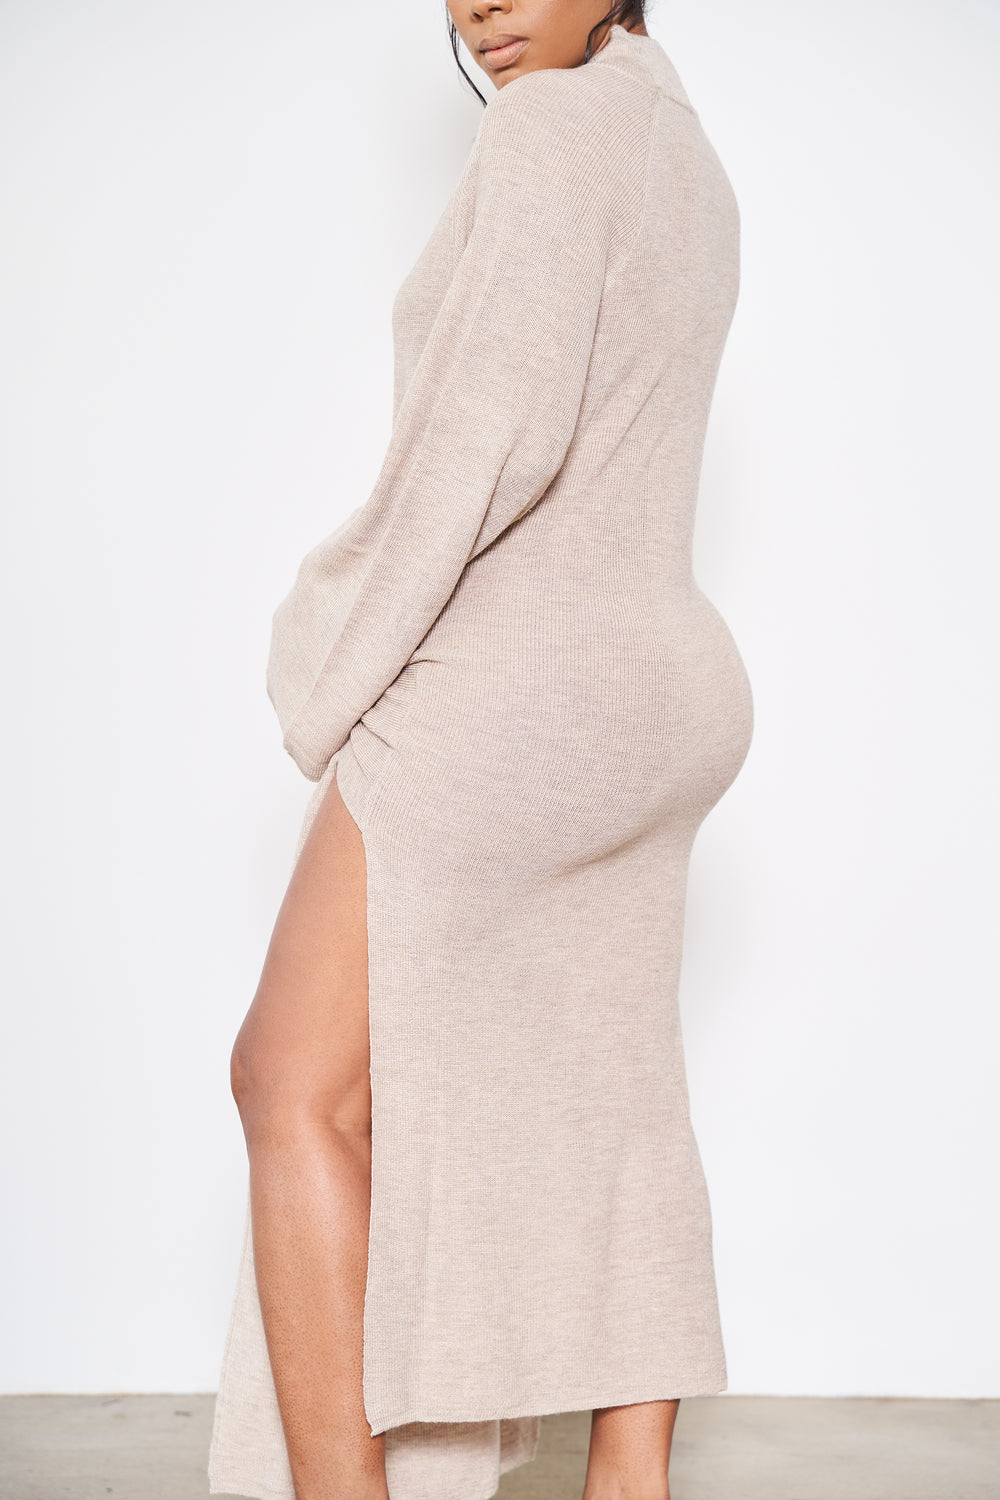 A Different Cloth | Sweater Dress  (Nude)